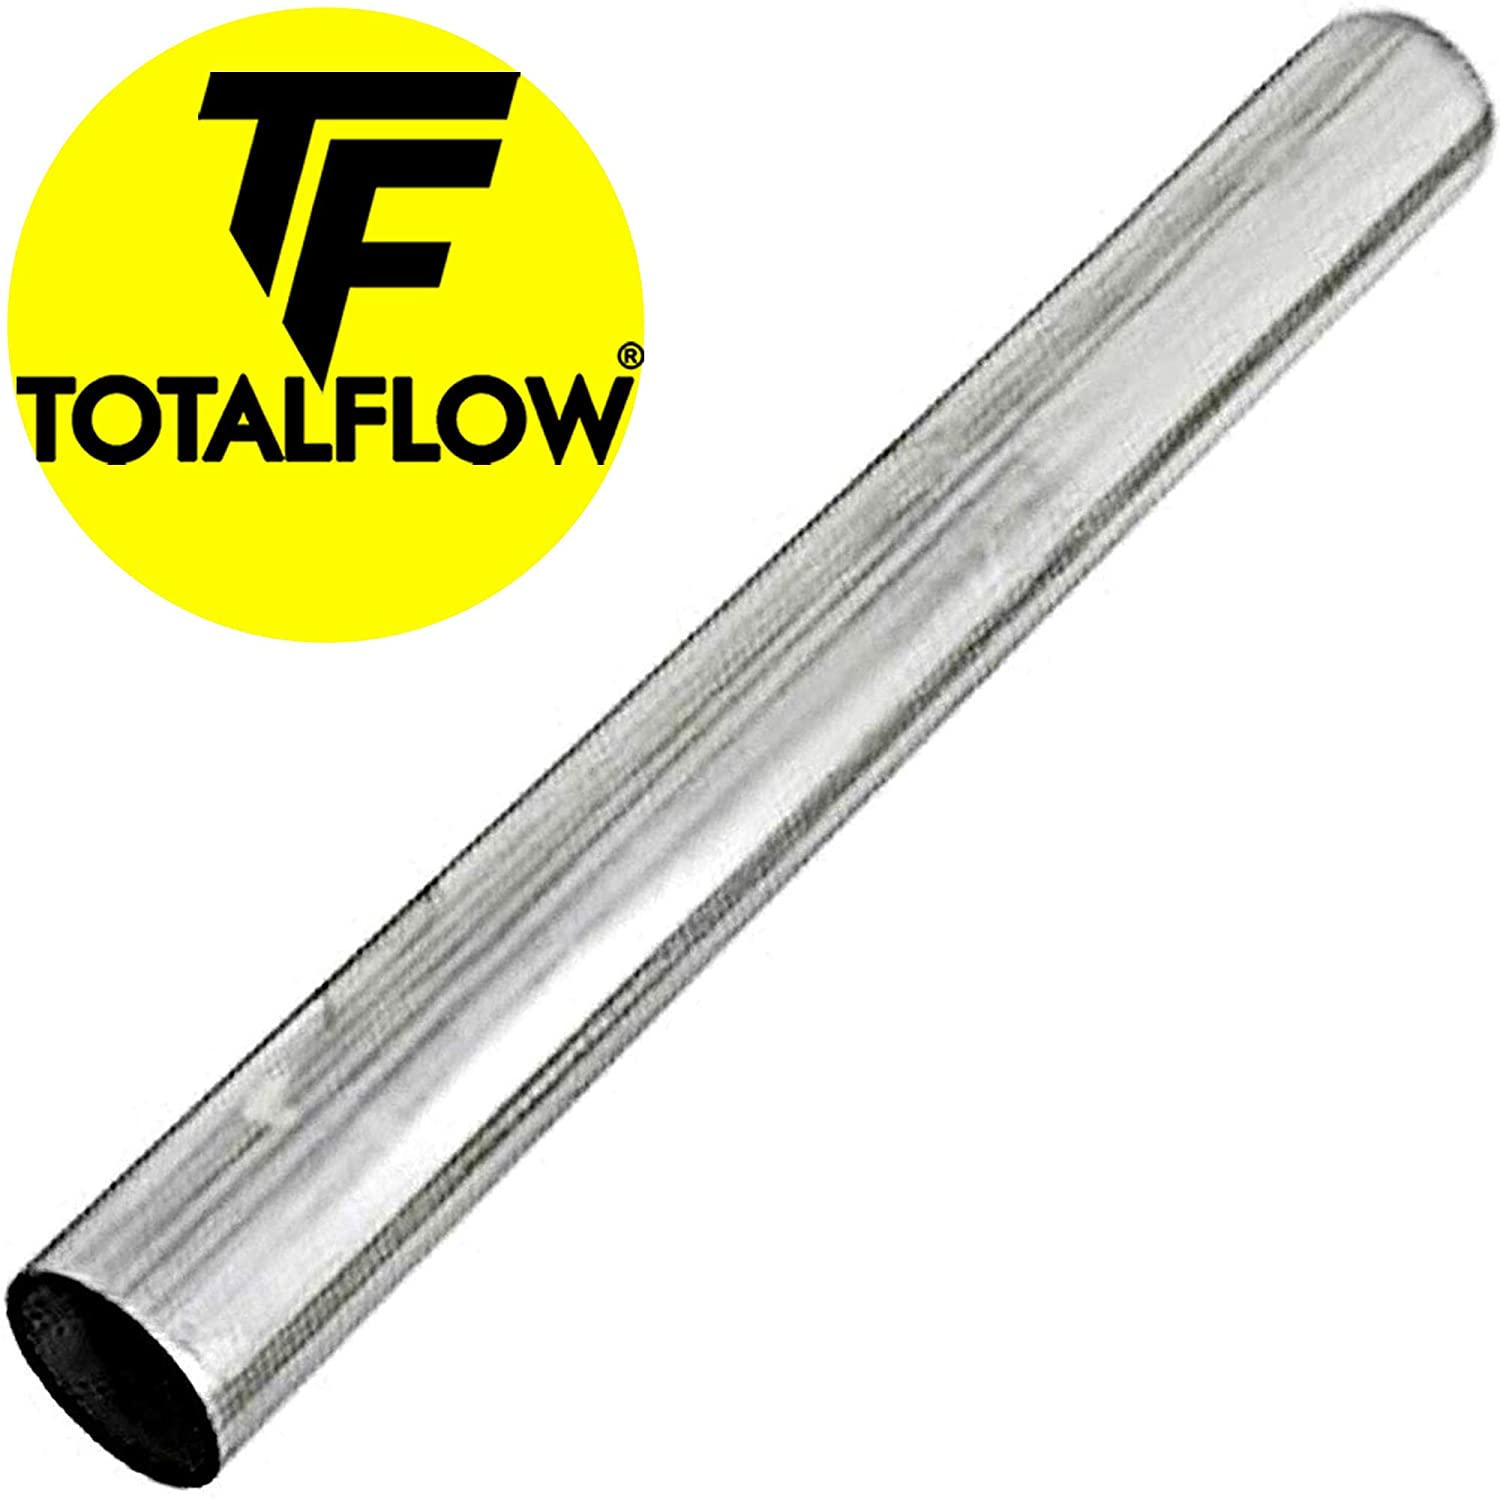 """TOTALFLOW TF-P223 409 Stainless Steel Straight Tube 3"""" O.D. 20"""" Length Exhaust Pipe (Outer Diameter)"""